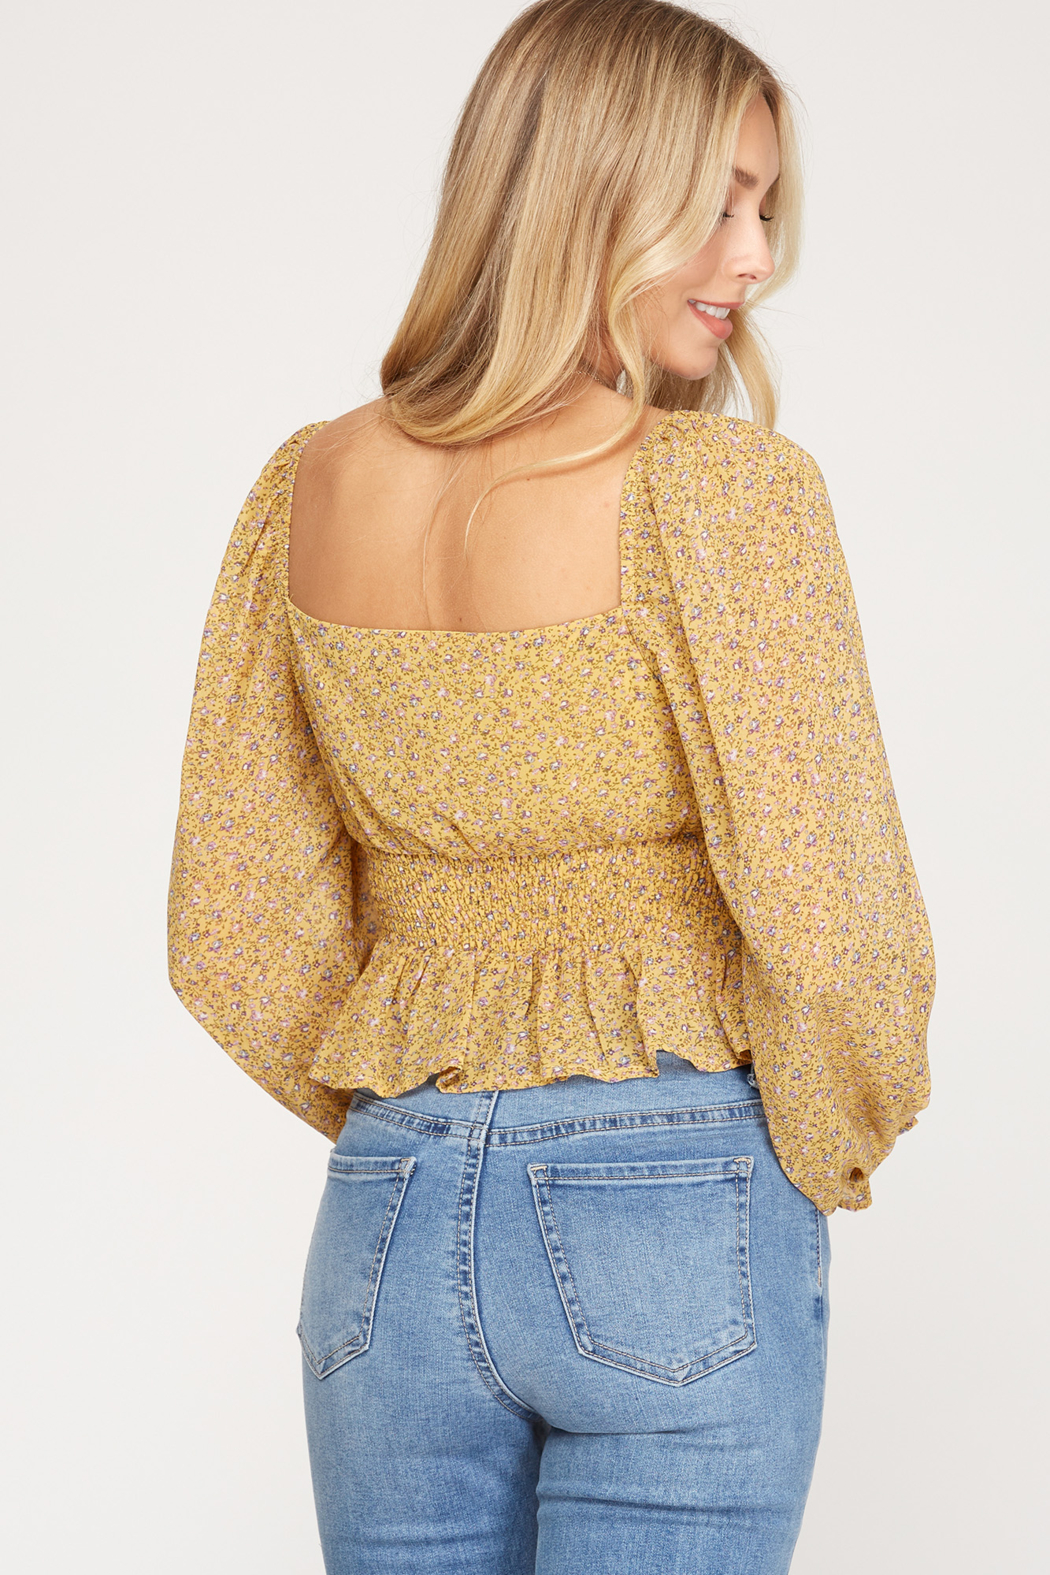 She + Sky Floral Print Smocked Top - Front Full Image